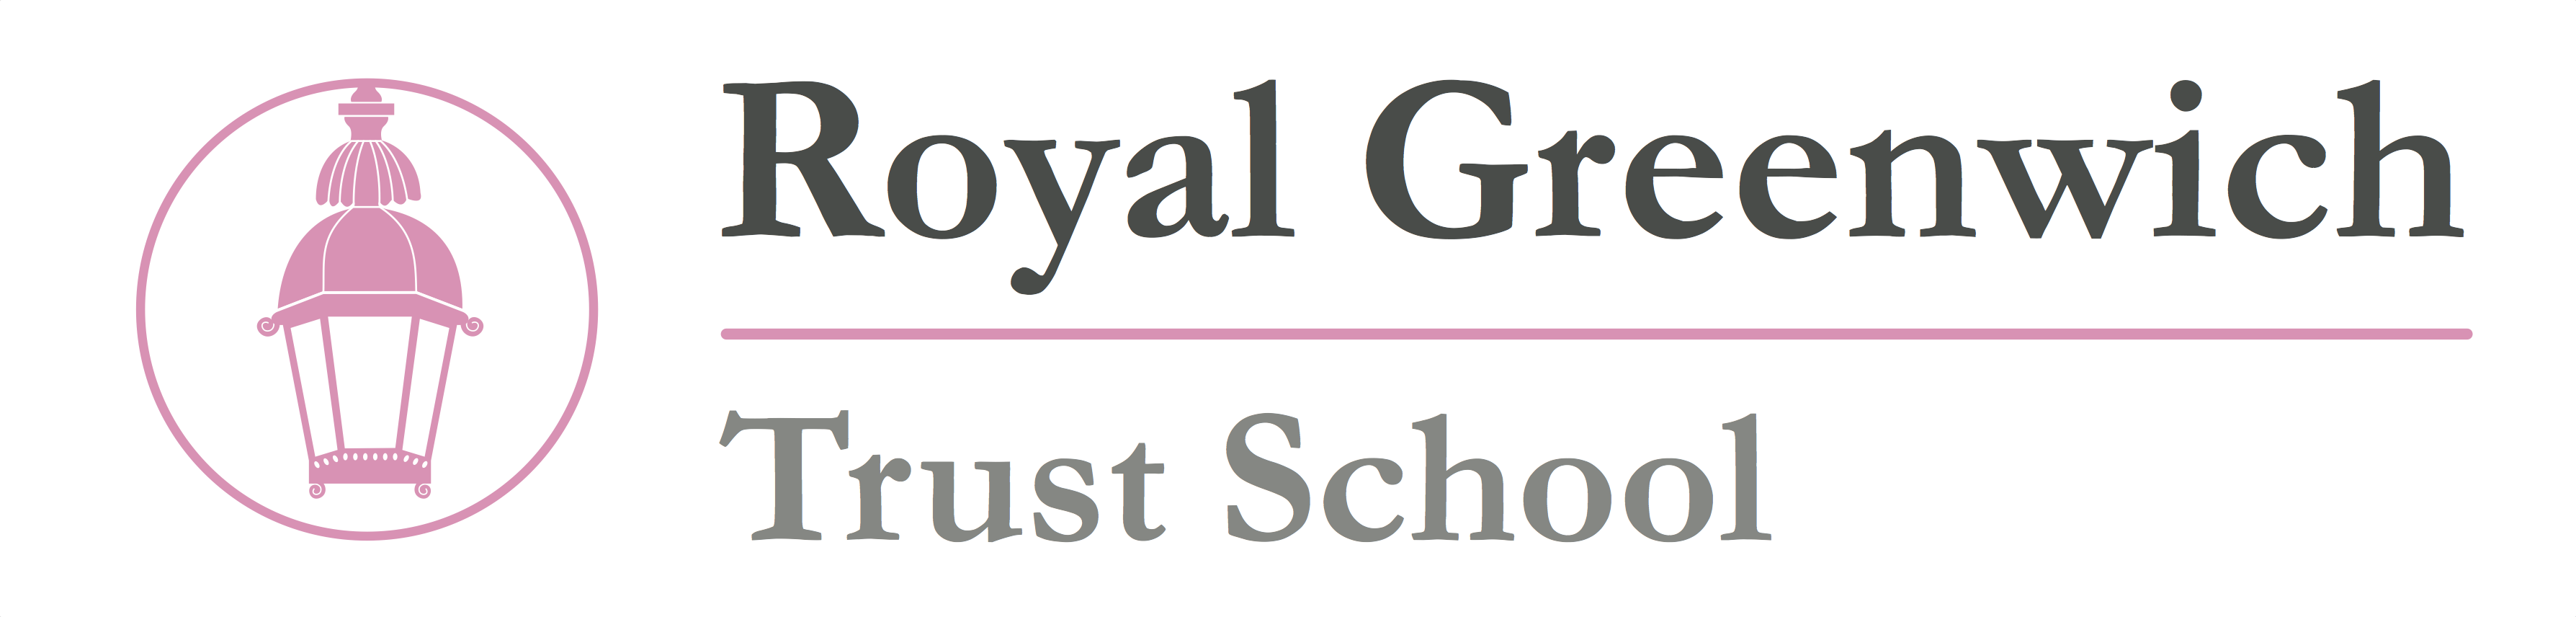 The Royal Greenwich Trust School